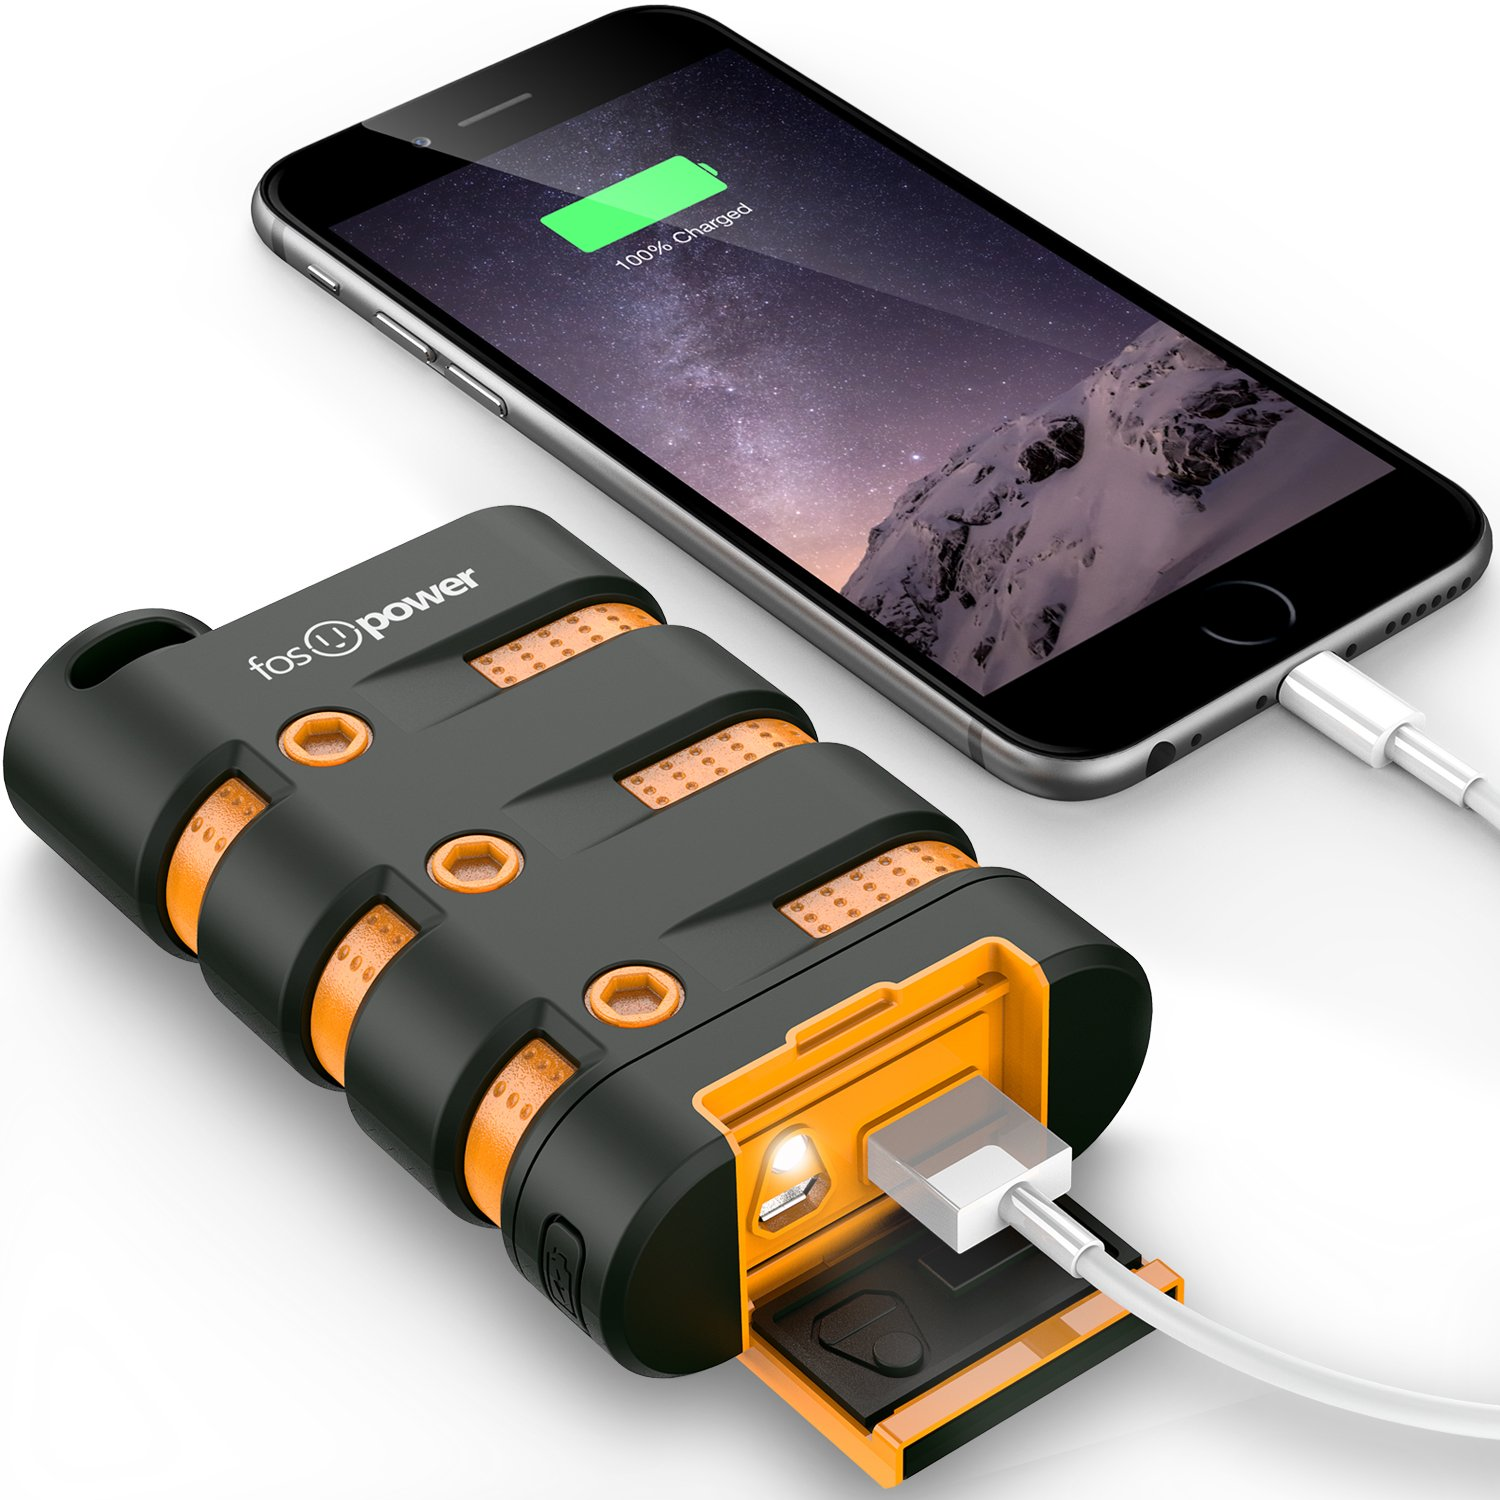 5 Best Portable Battery Charger in 2018 for Your Android Phone